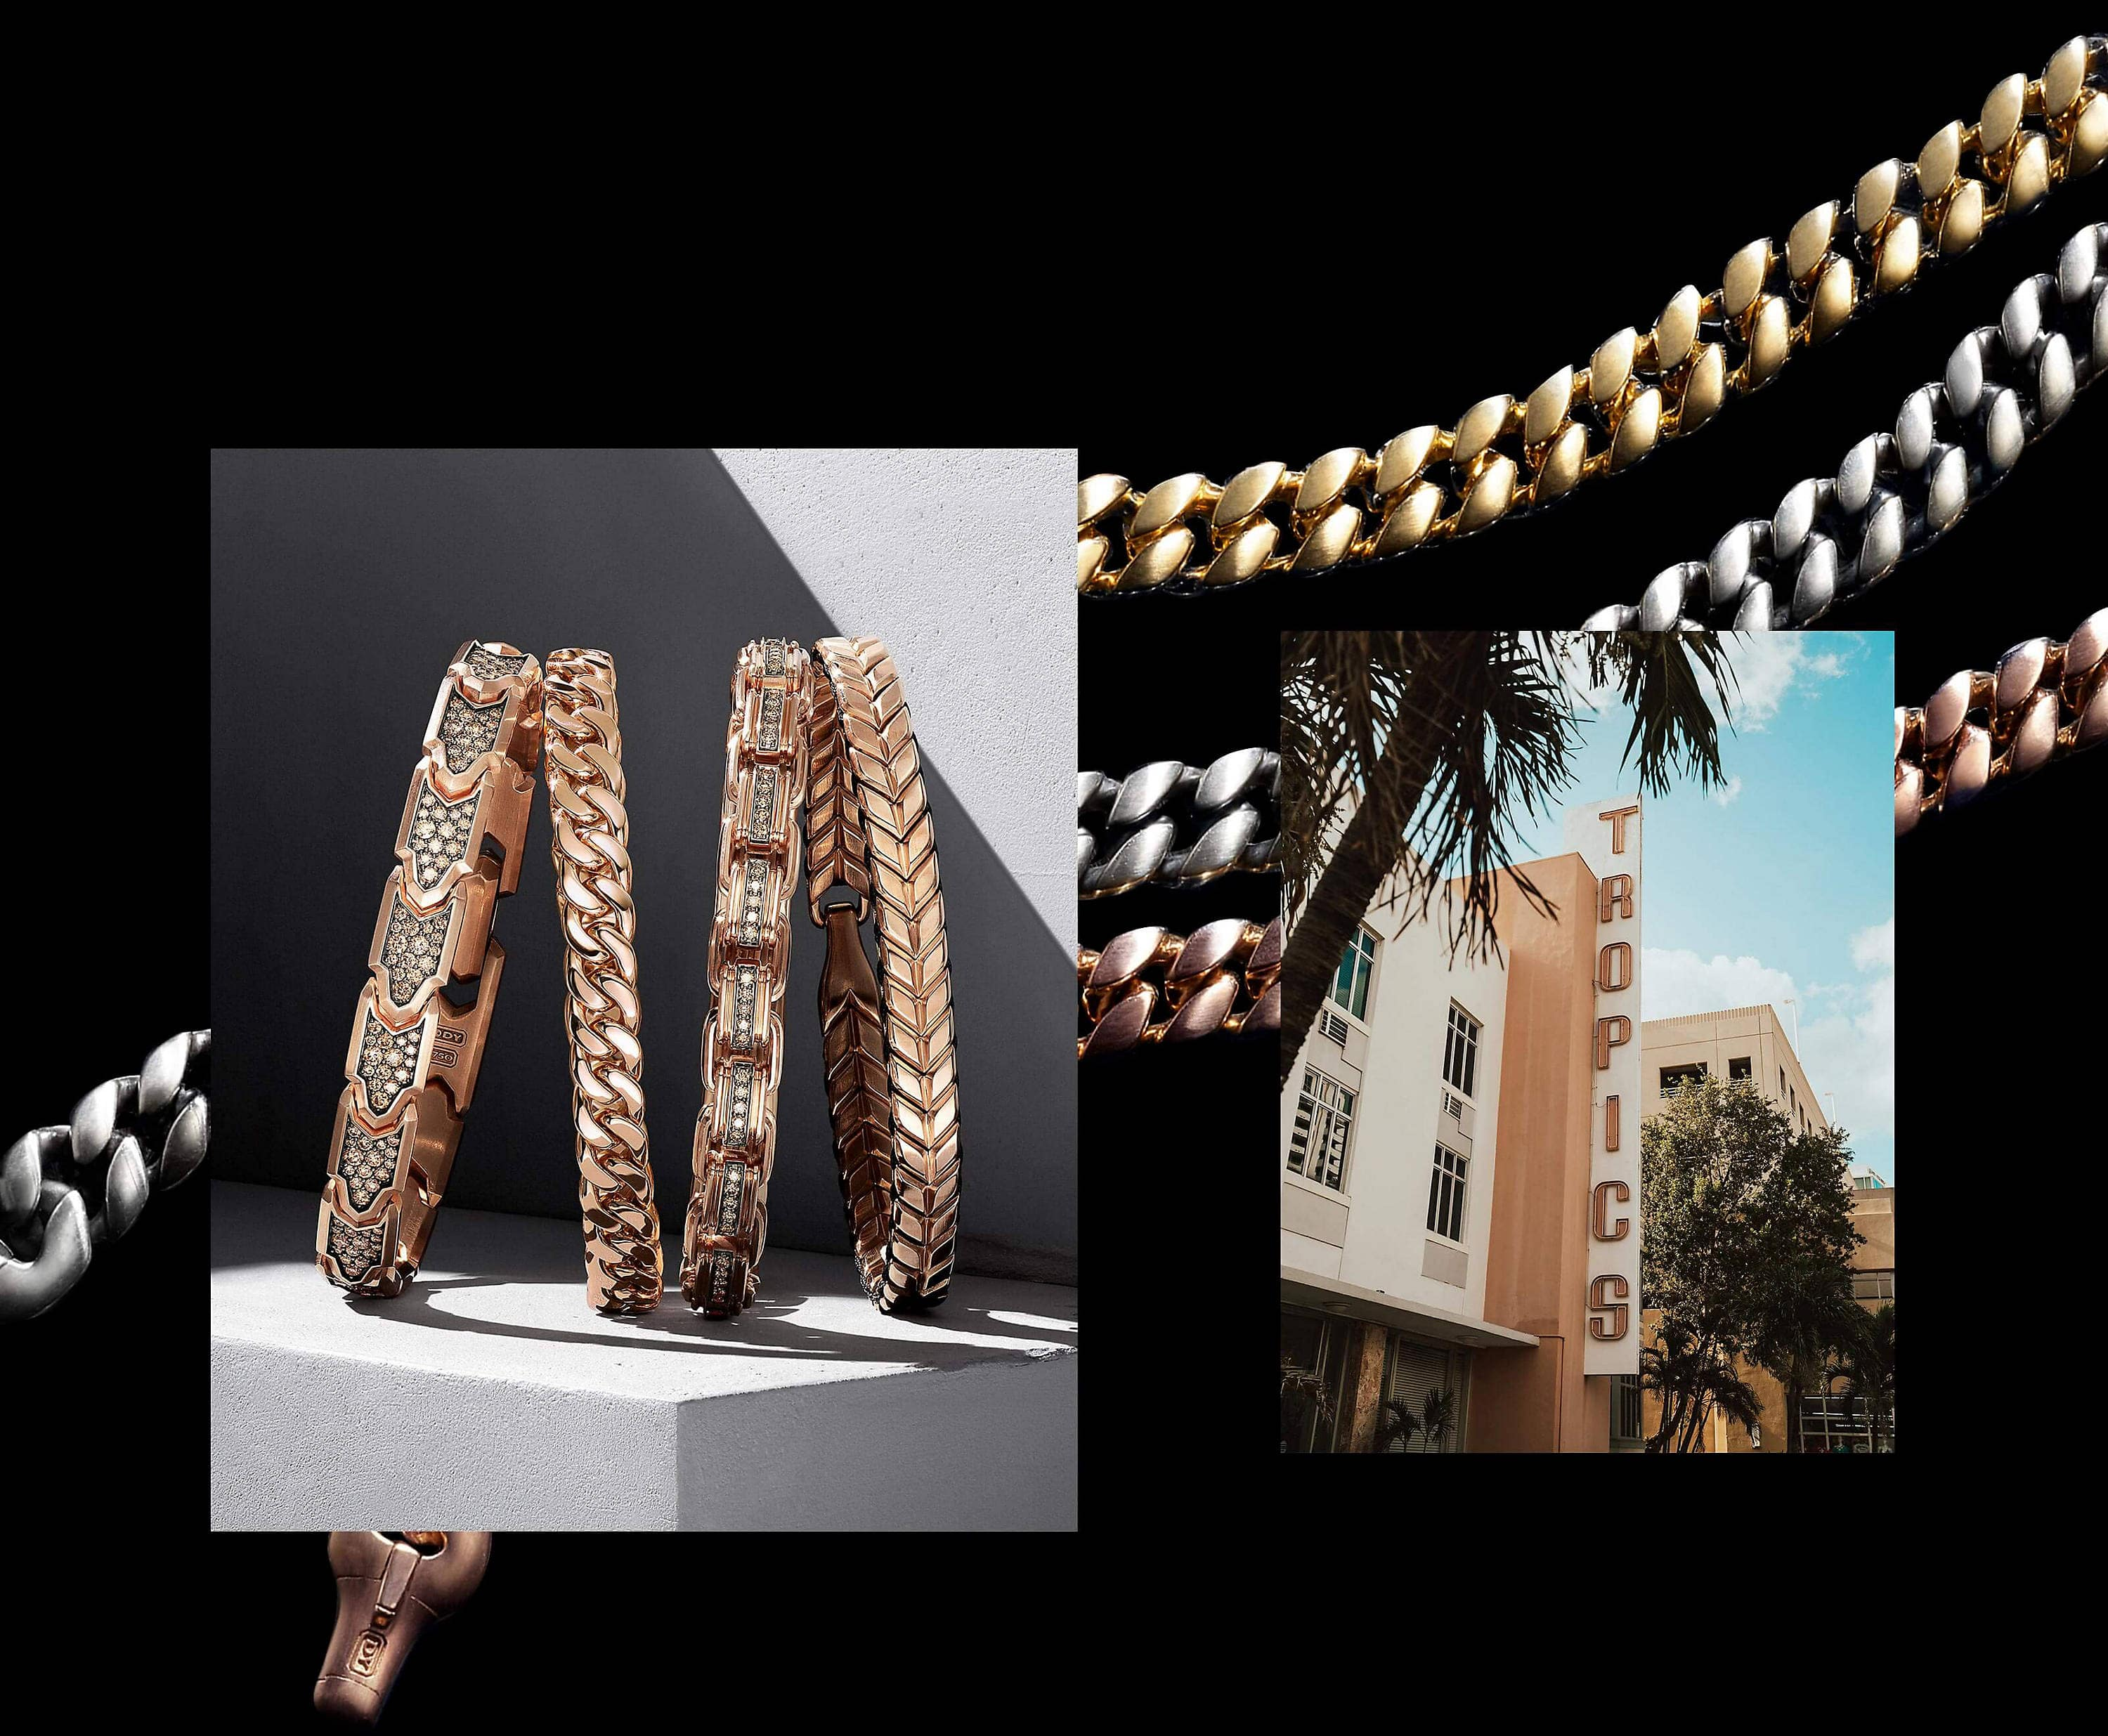 Two color photos are juxtaposed on a black background with white text. On the left is an image showing four David Yurman men's chain bracelets in 18K rose gold with or without pavé diamonds leaning against one another on a dark grey stone shelf with diagonal shadows. On the right is a photo of the Tropics hotel in Miami. Draped behind the pictures are David Yurman men's Chain necklaces in 18K yellow gold, sterling silver and 18K rose gold